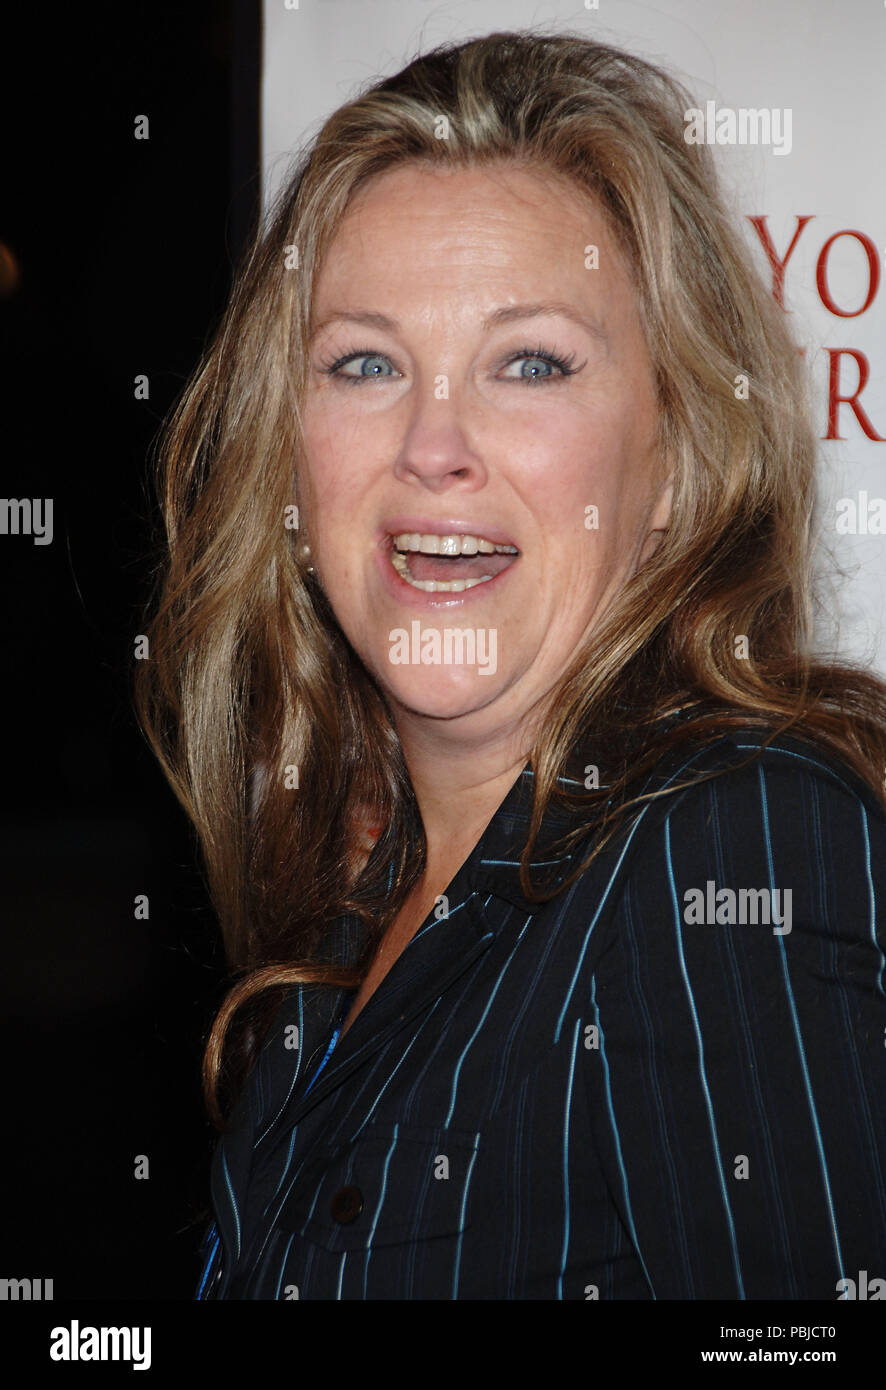 Catherine O'Hara Catherine O'Hara new photo